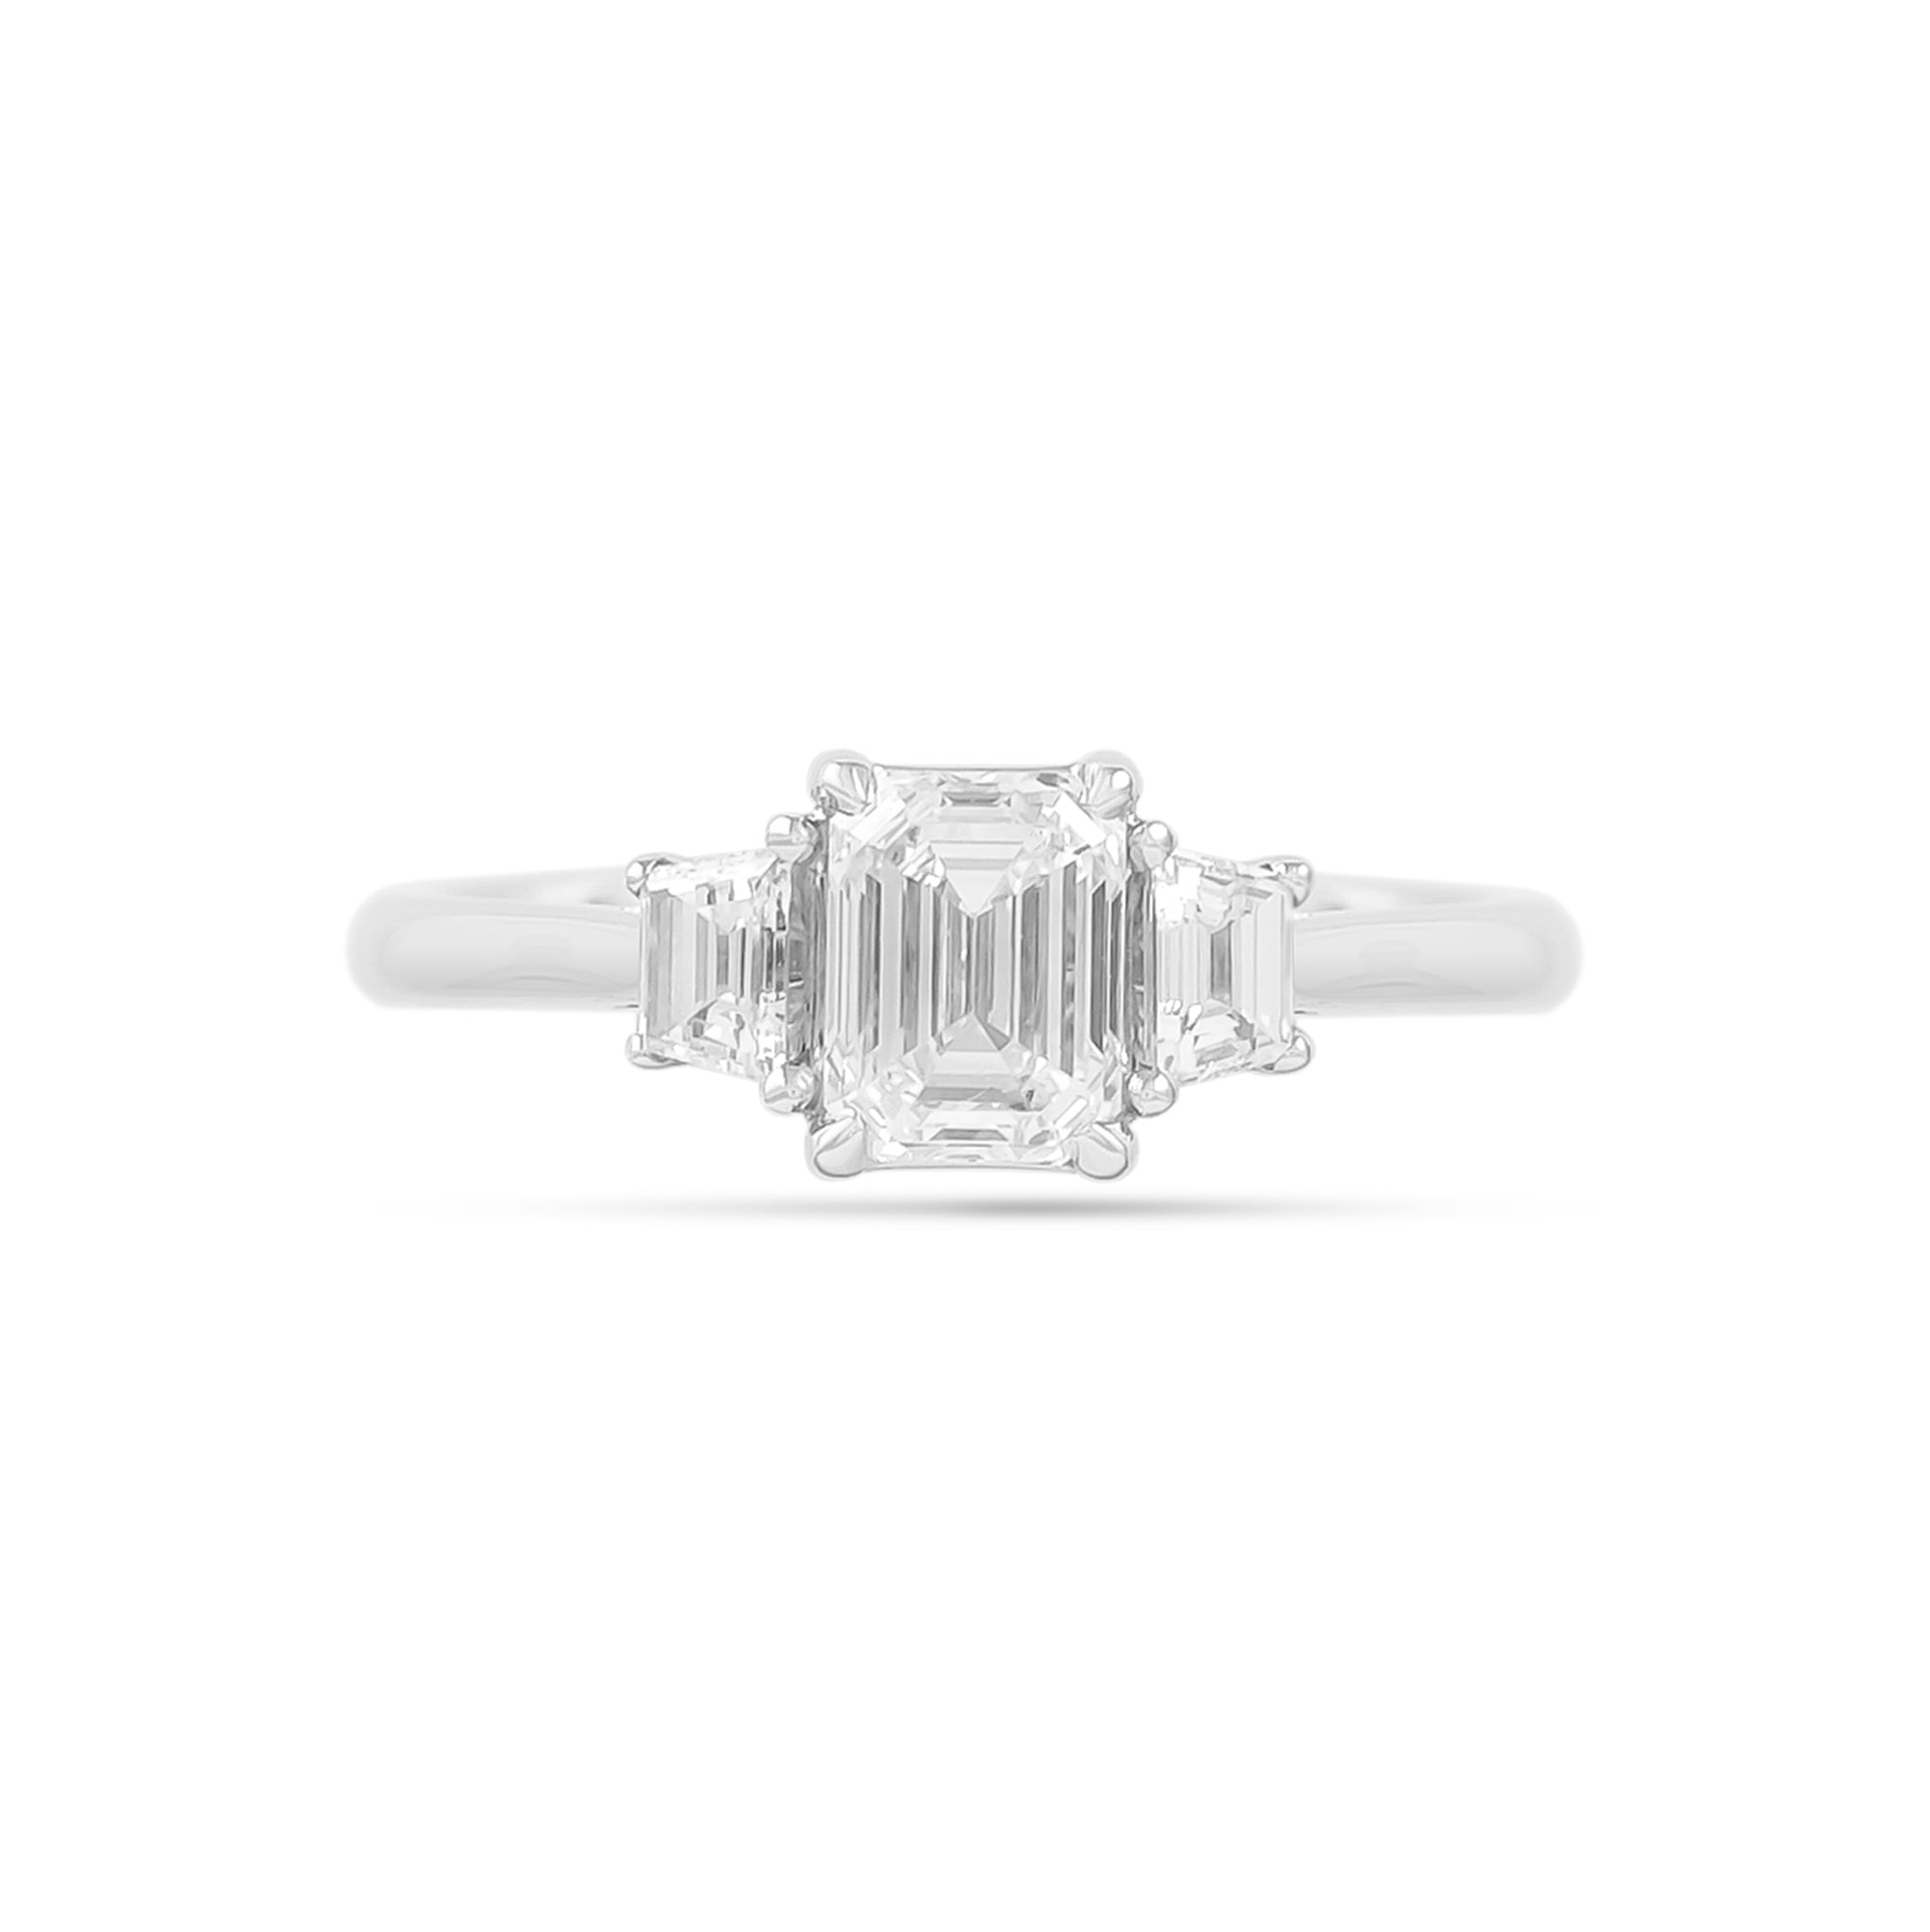 1.01ct Emerald-Cut Three Stone Diamond Engagement Ring